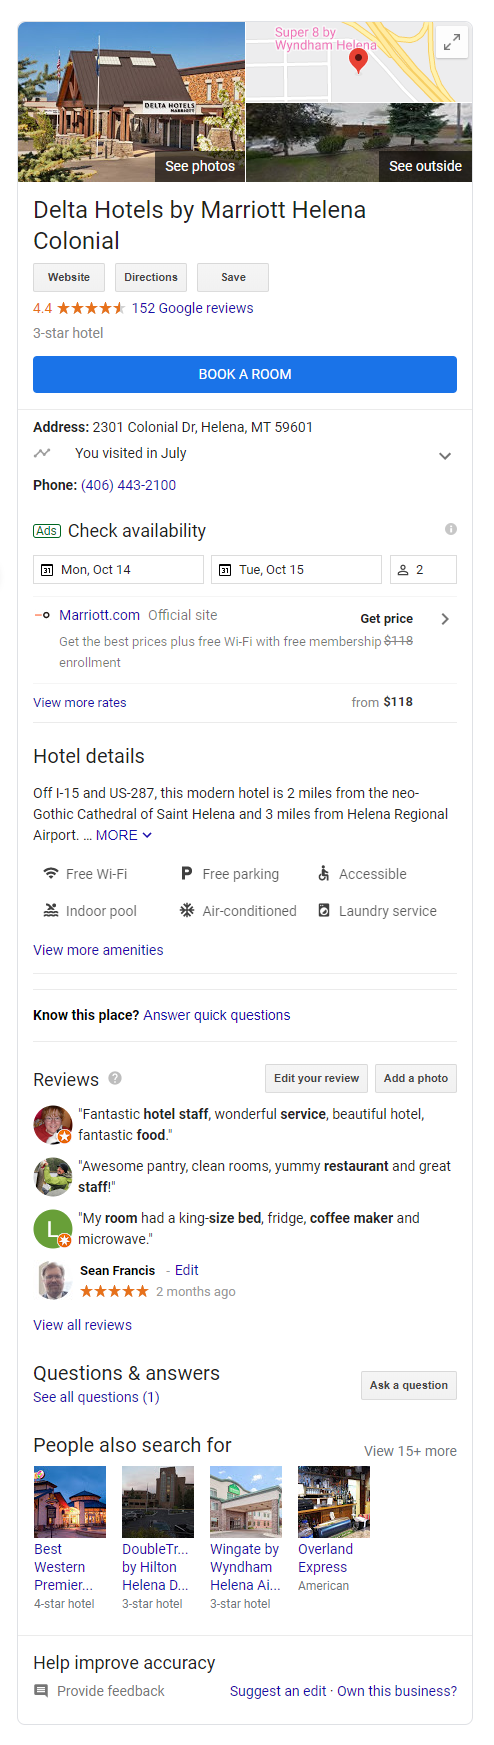 example of the knowledge graph on Google